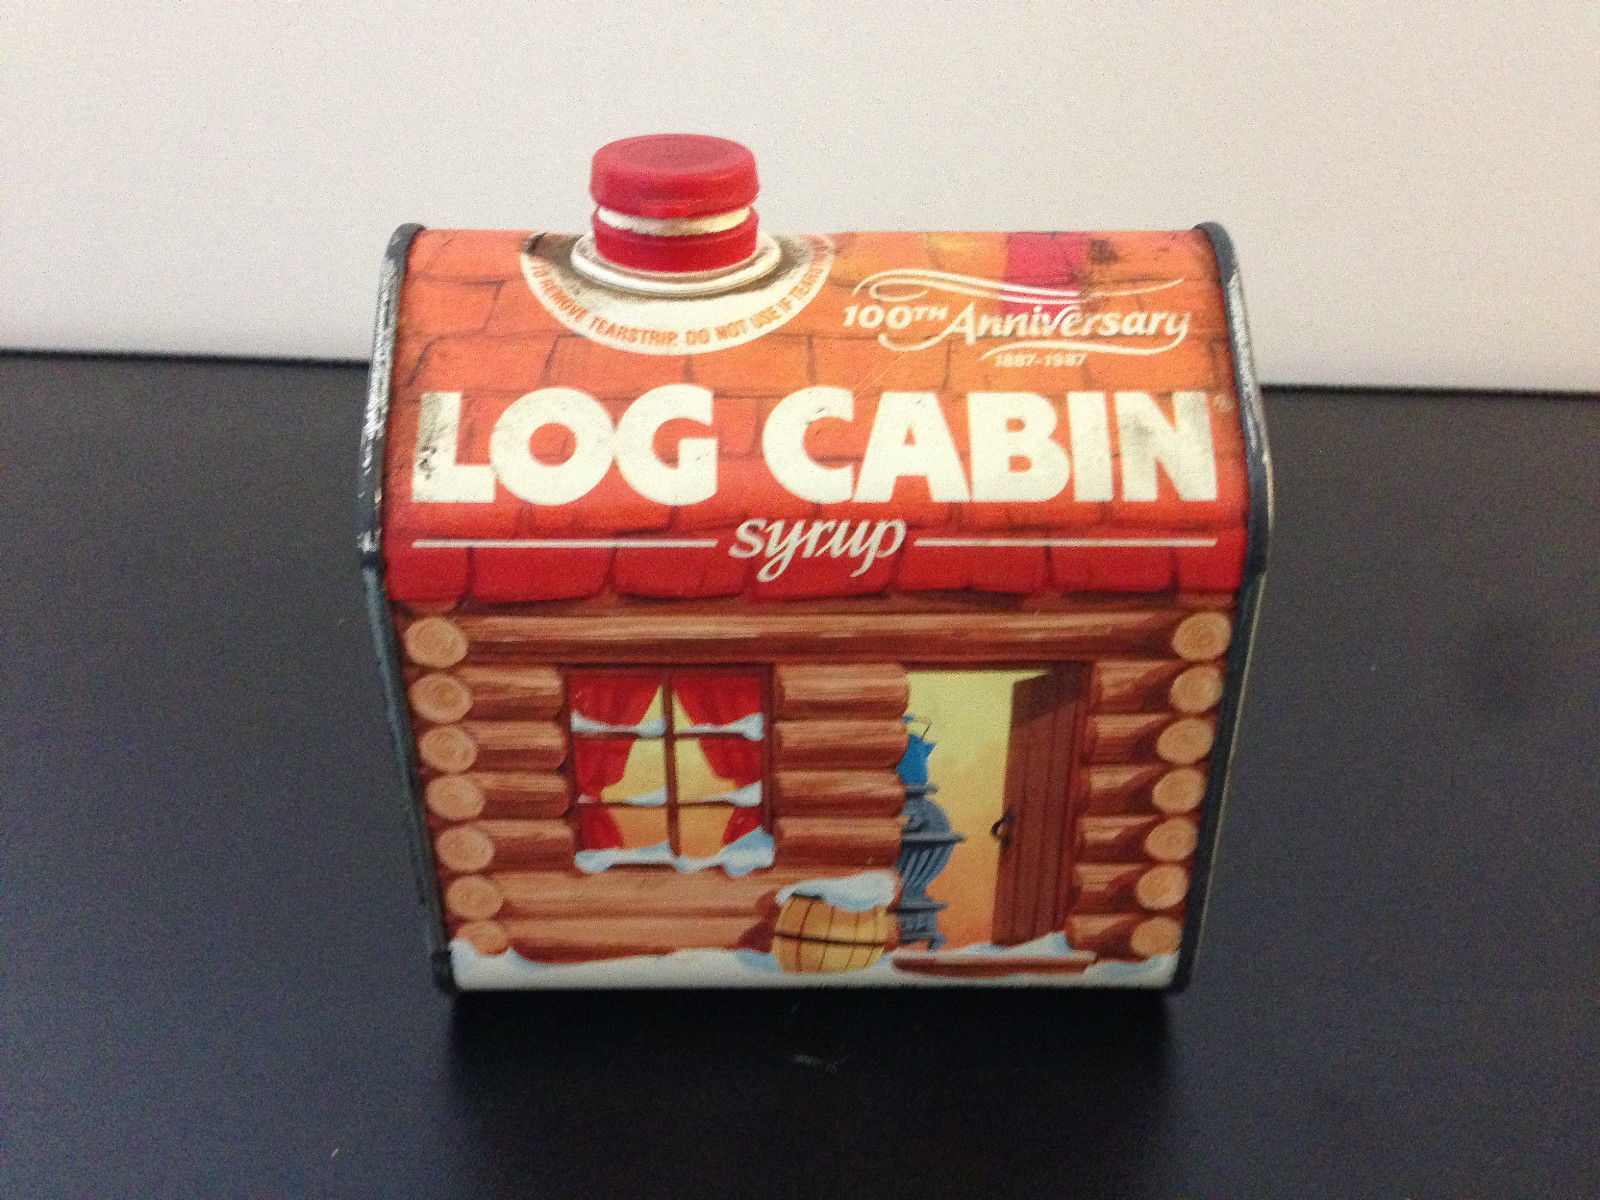 Very Impressive portraiture of Vintage 1987 Log Cabin Syrup Tin Container / 100th Year Anniversary  with #A64925 color and 1600x1200 pixels